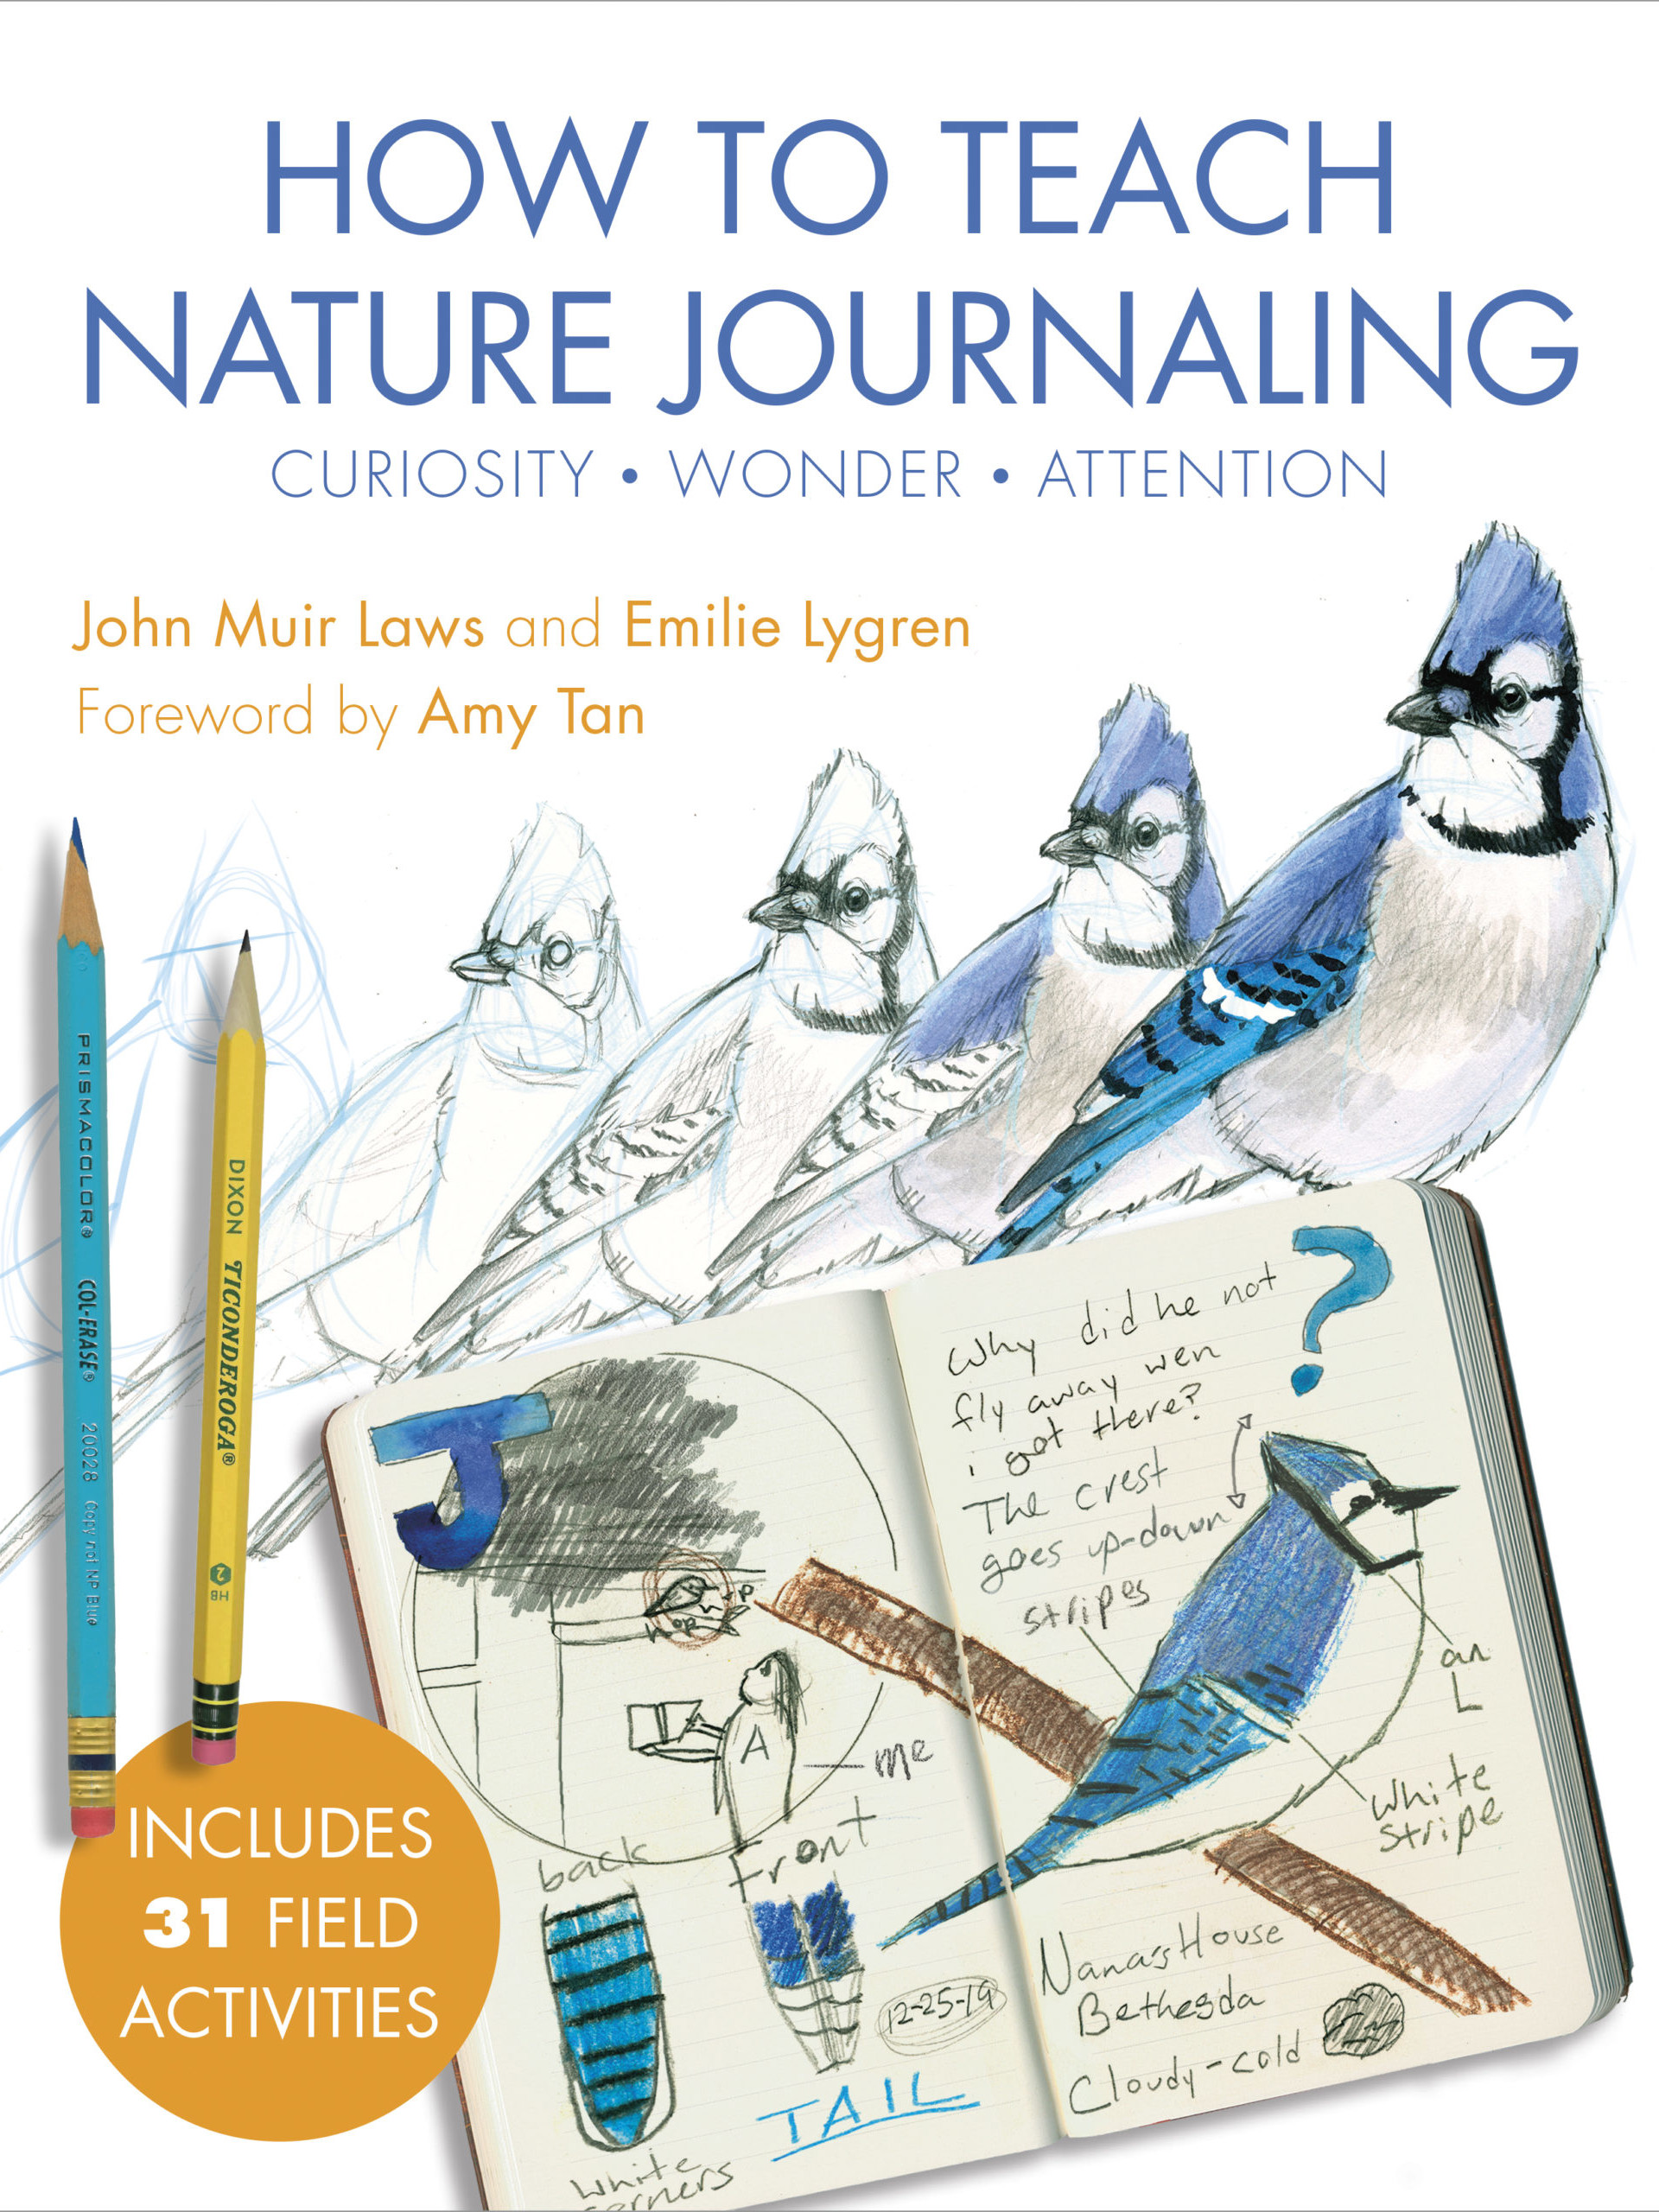 photo of book titled How To Teach Nature Journaling